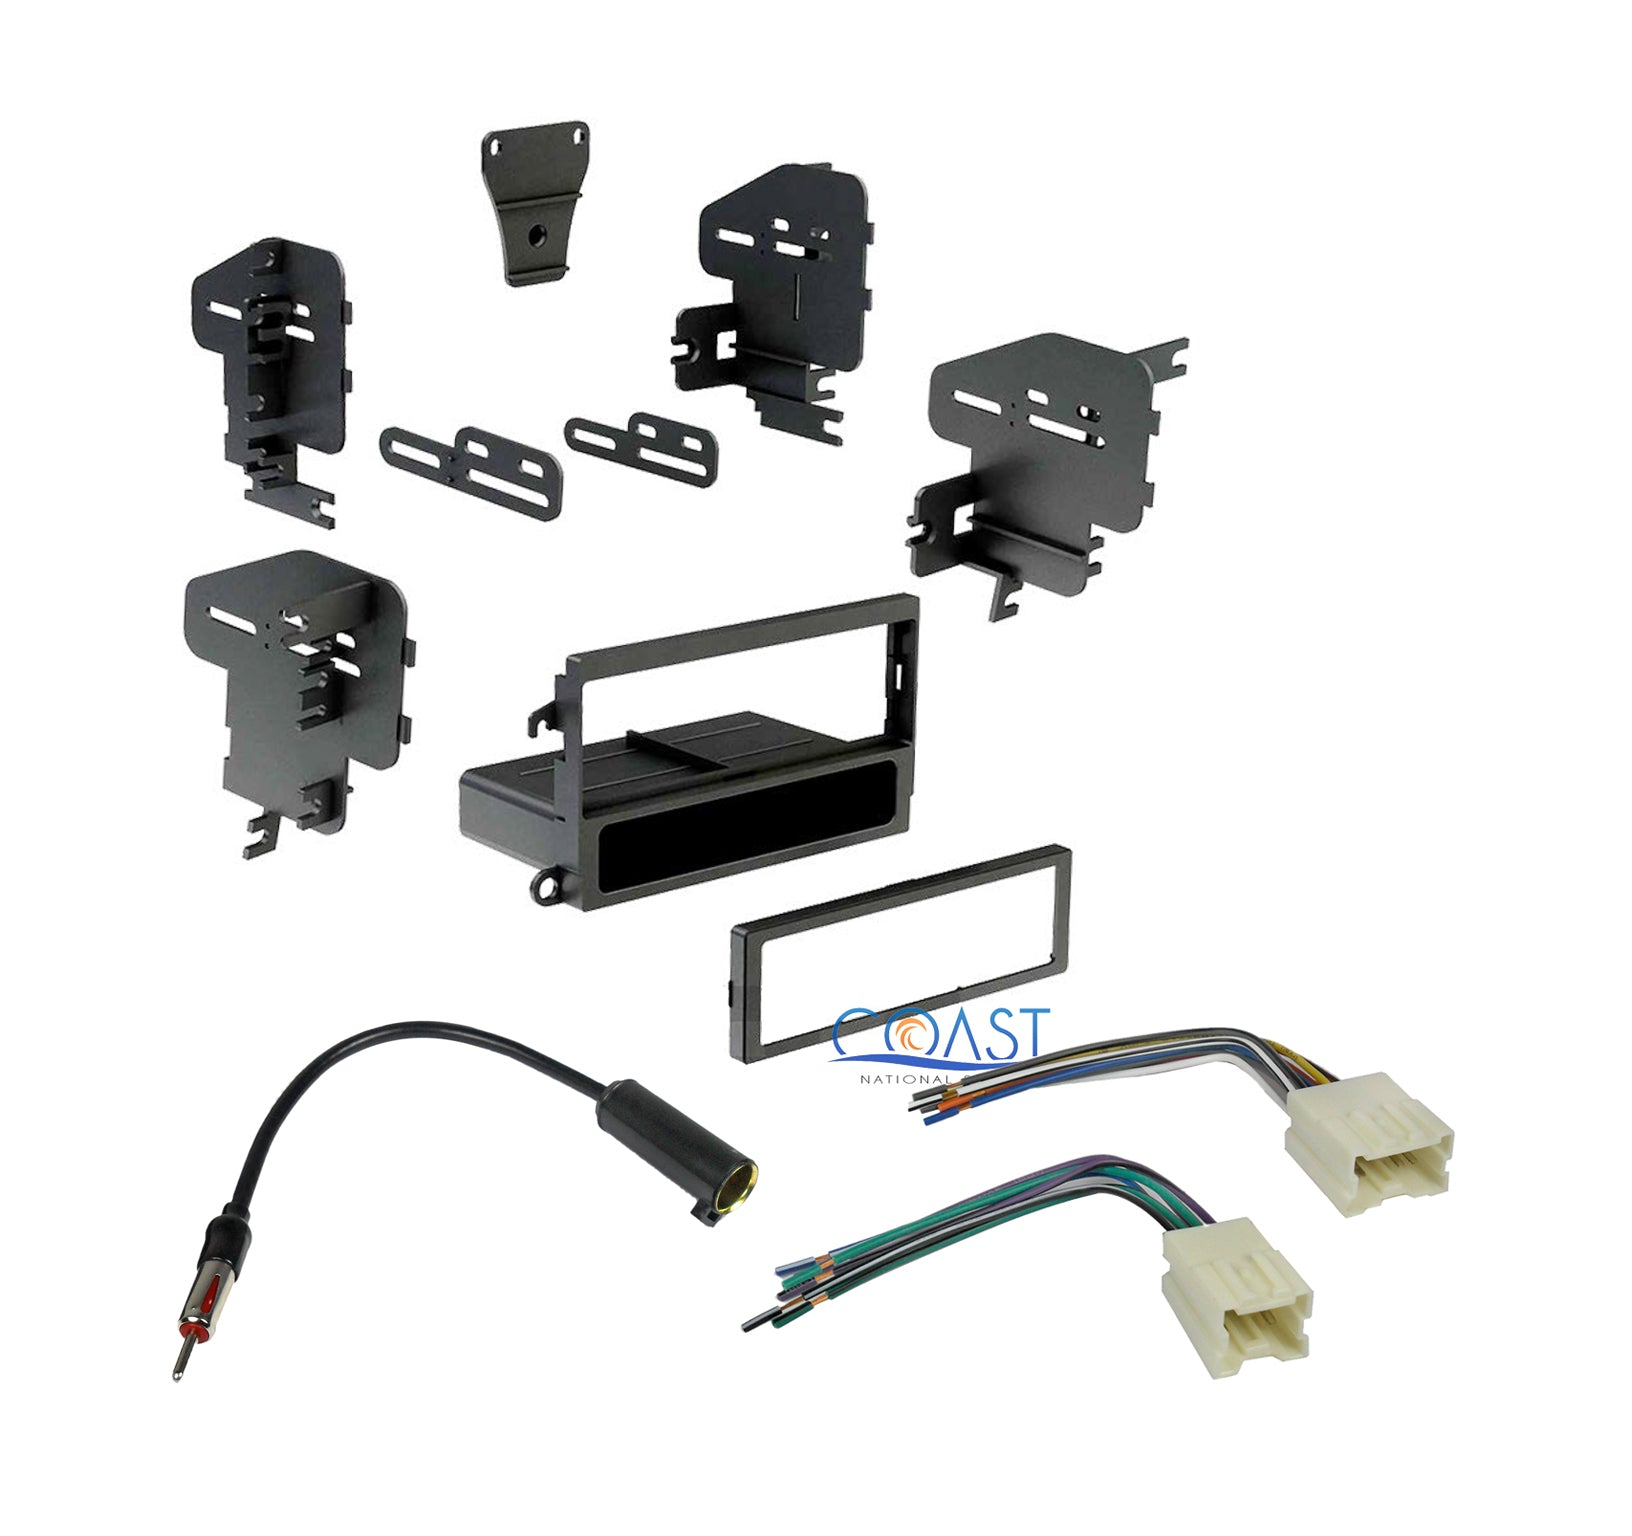 Single DIN Install Stereo Dash Kit Antenna Harness for Nissan 1995-2004